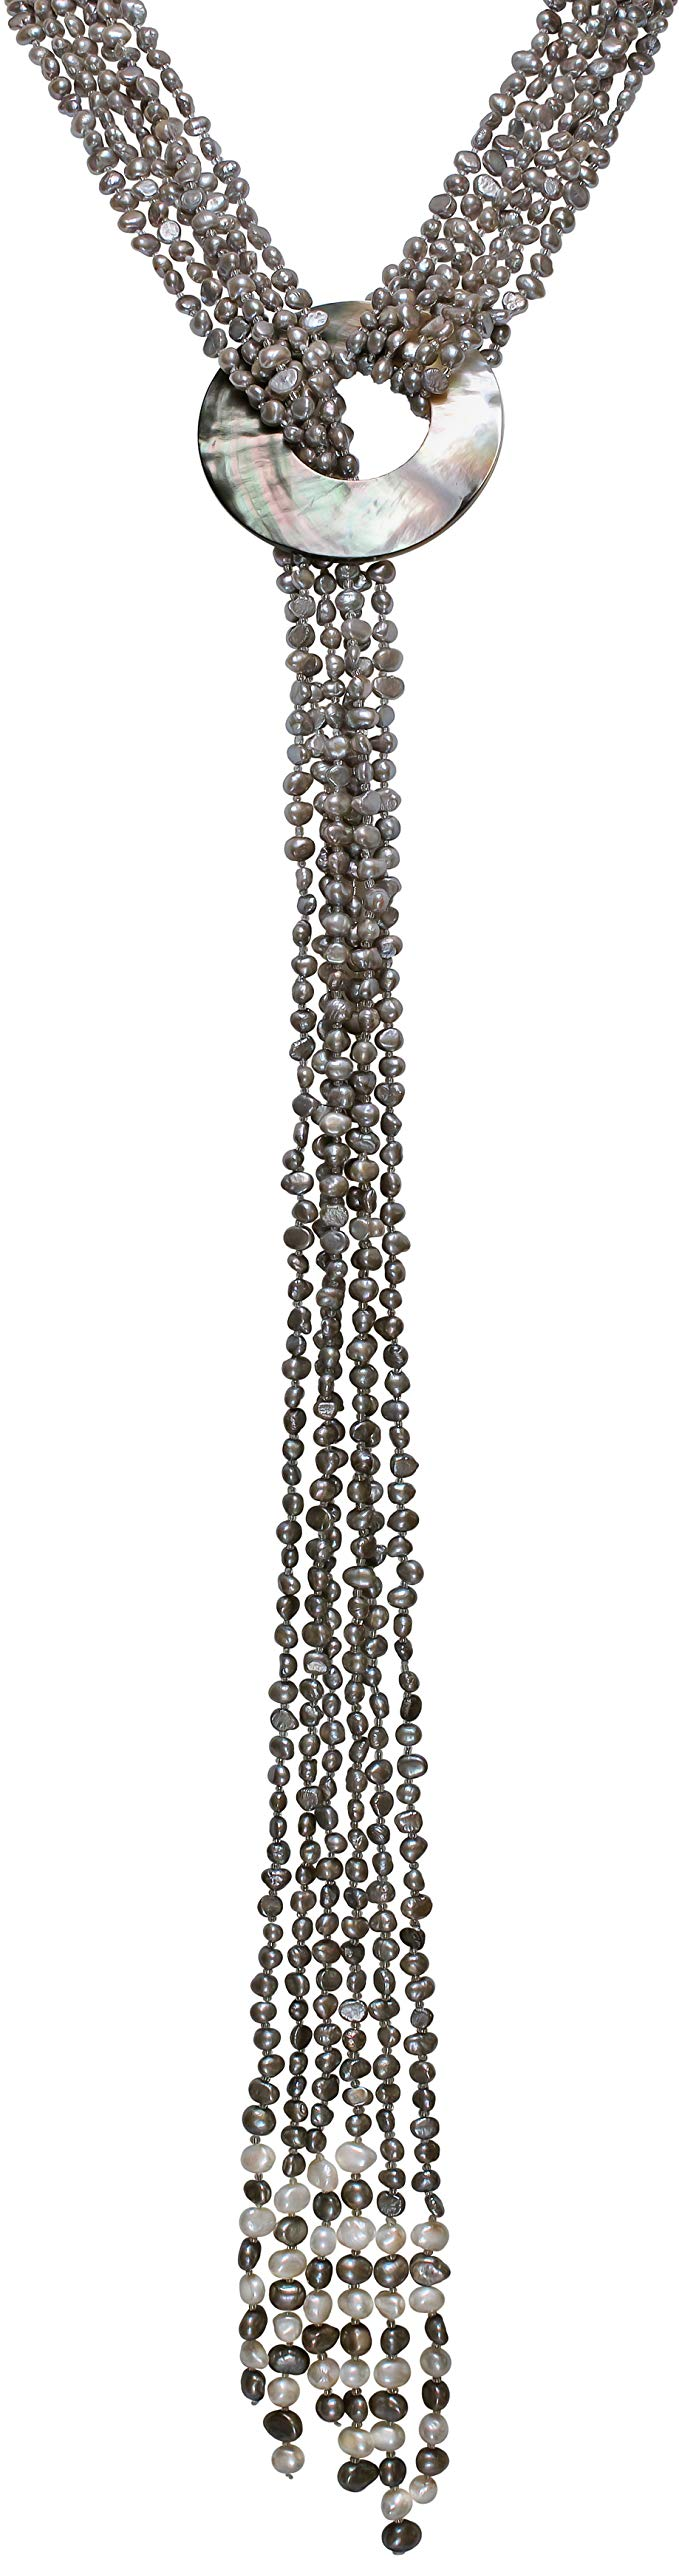 HinsonGayle 'Cleopatra' 6-Strand Silver Gray Cultured Freshwater Pearl & Shell Lariat Y Necklace-35 in Length by HinsonGayle Fine Pearl Jewelry